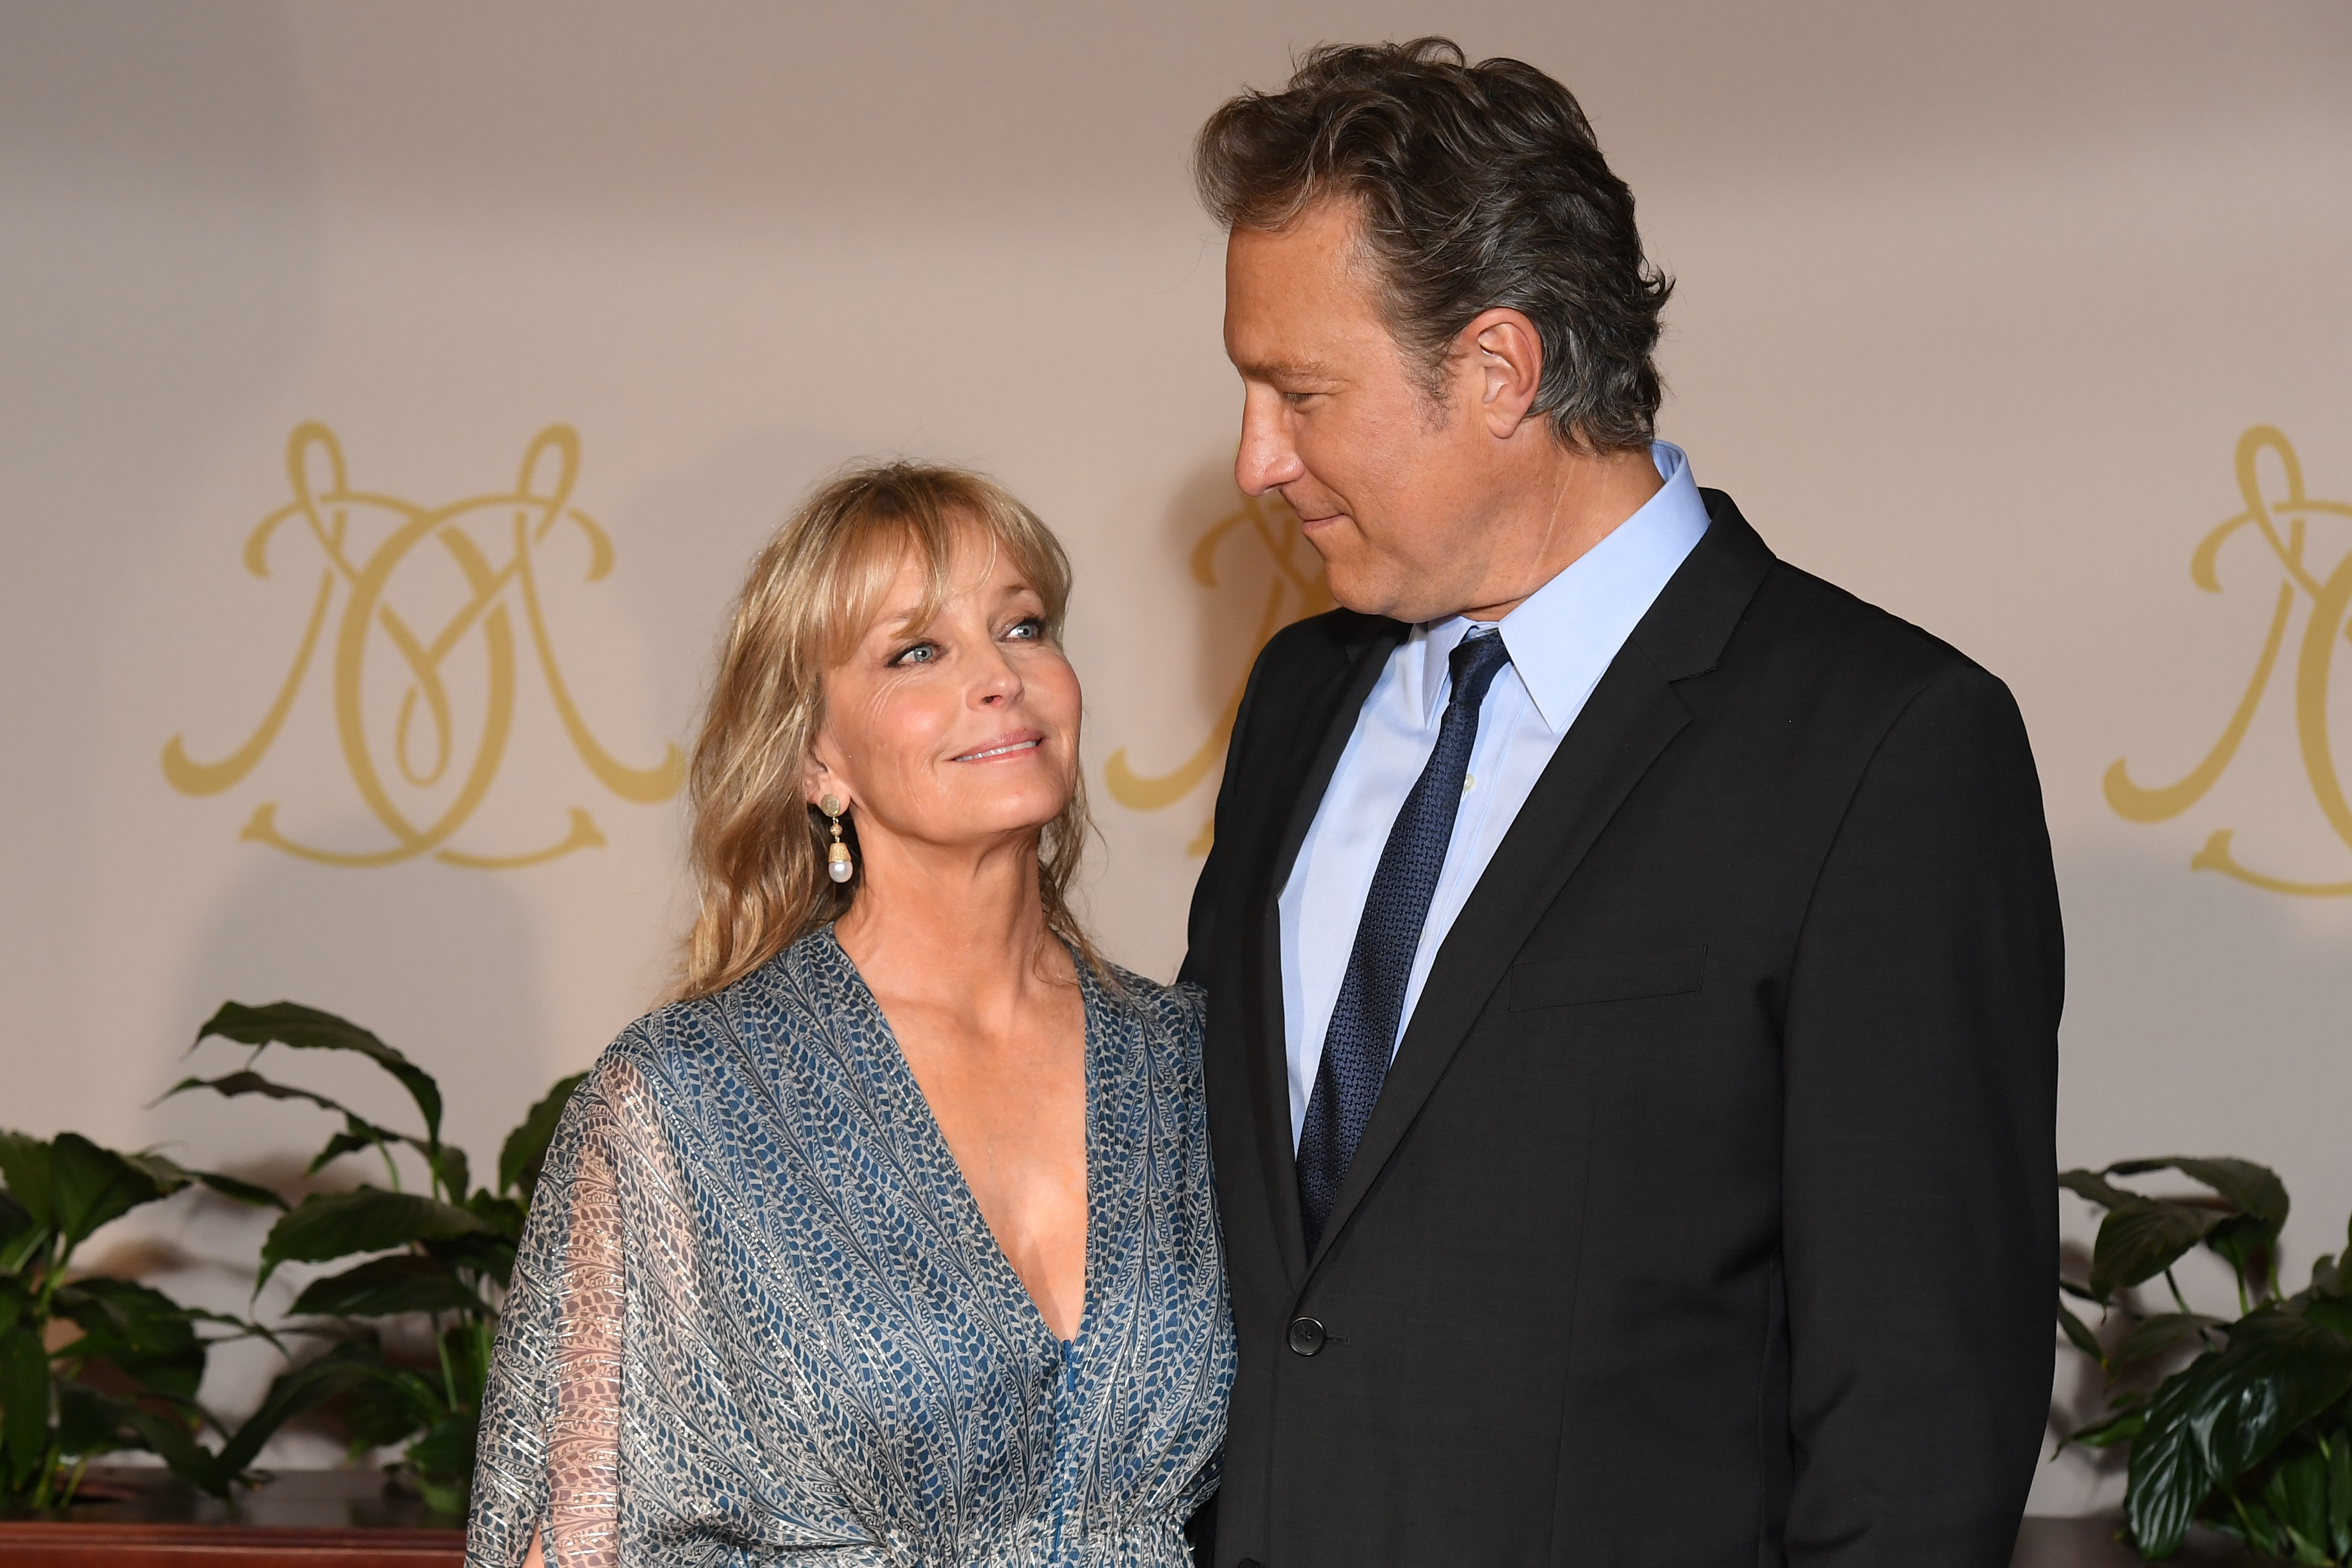 Bo Derek Gushes About Her Travel Date Nights With John Corbett